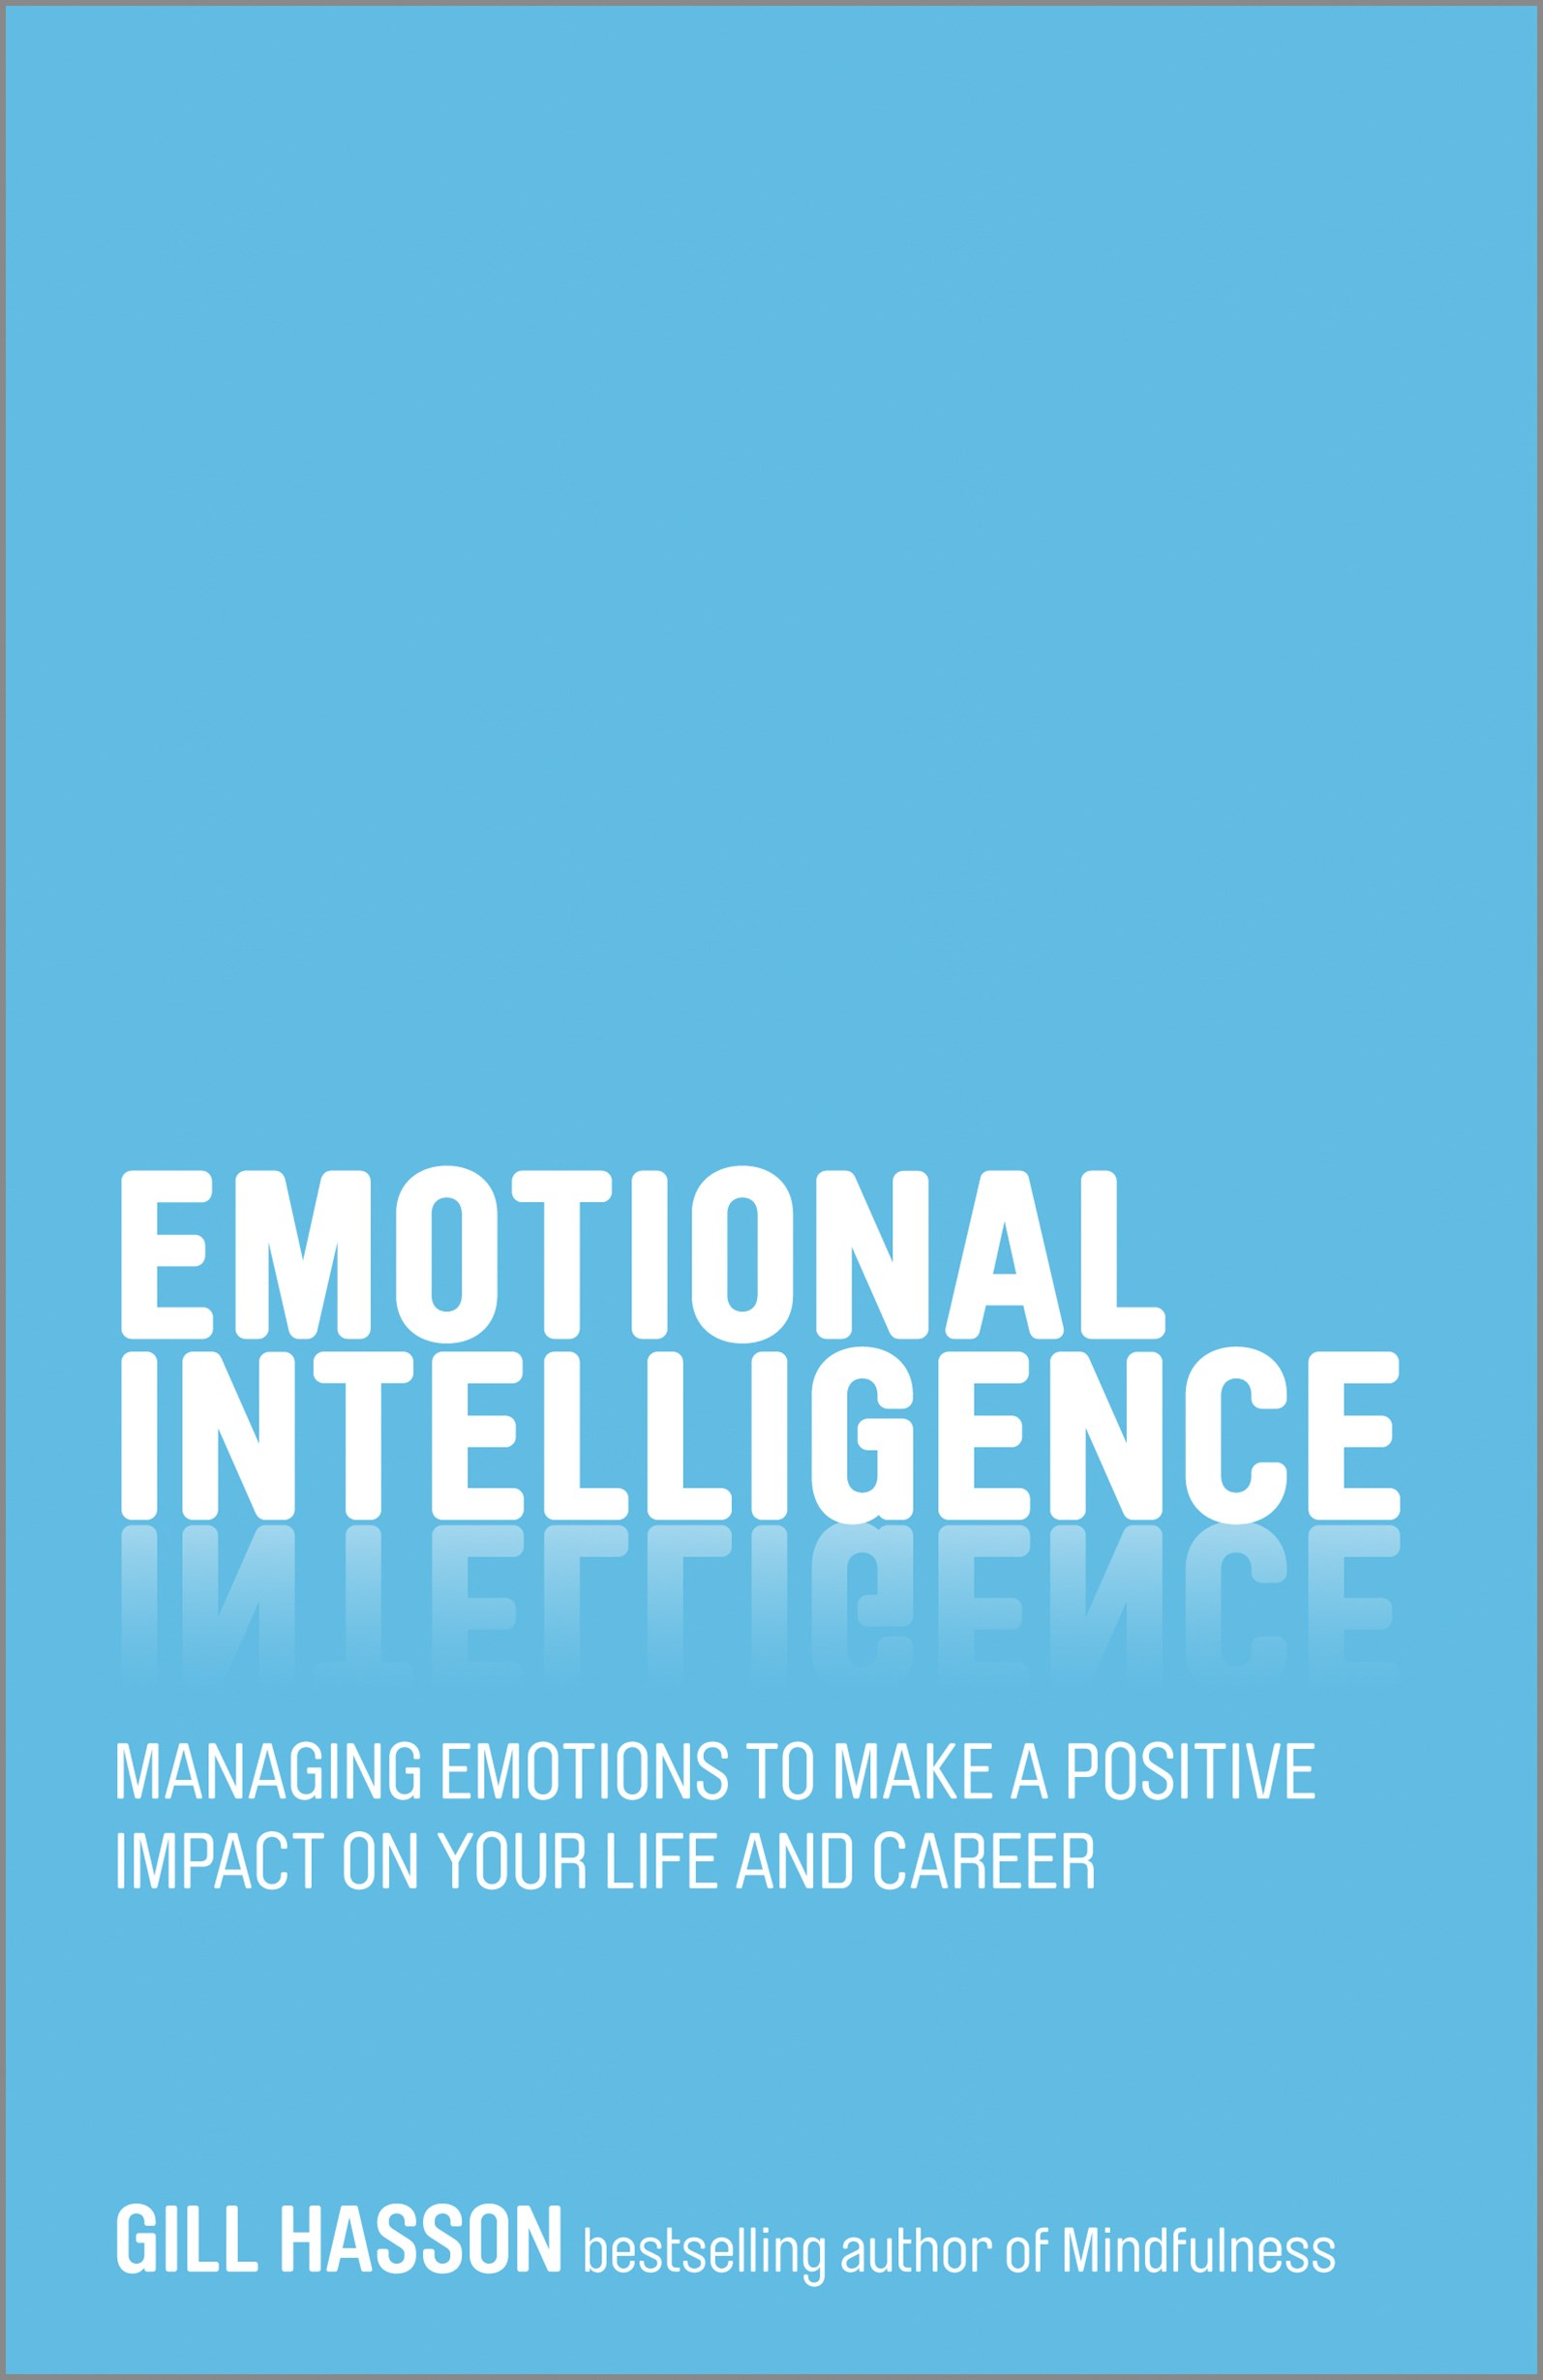 Emotional Intelligence - Managing Emotions to Make a Positive Impact on Your Life and Career